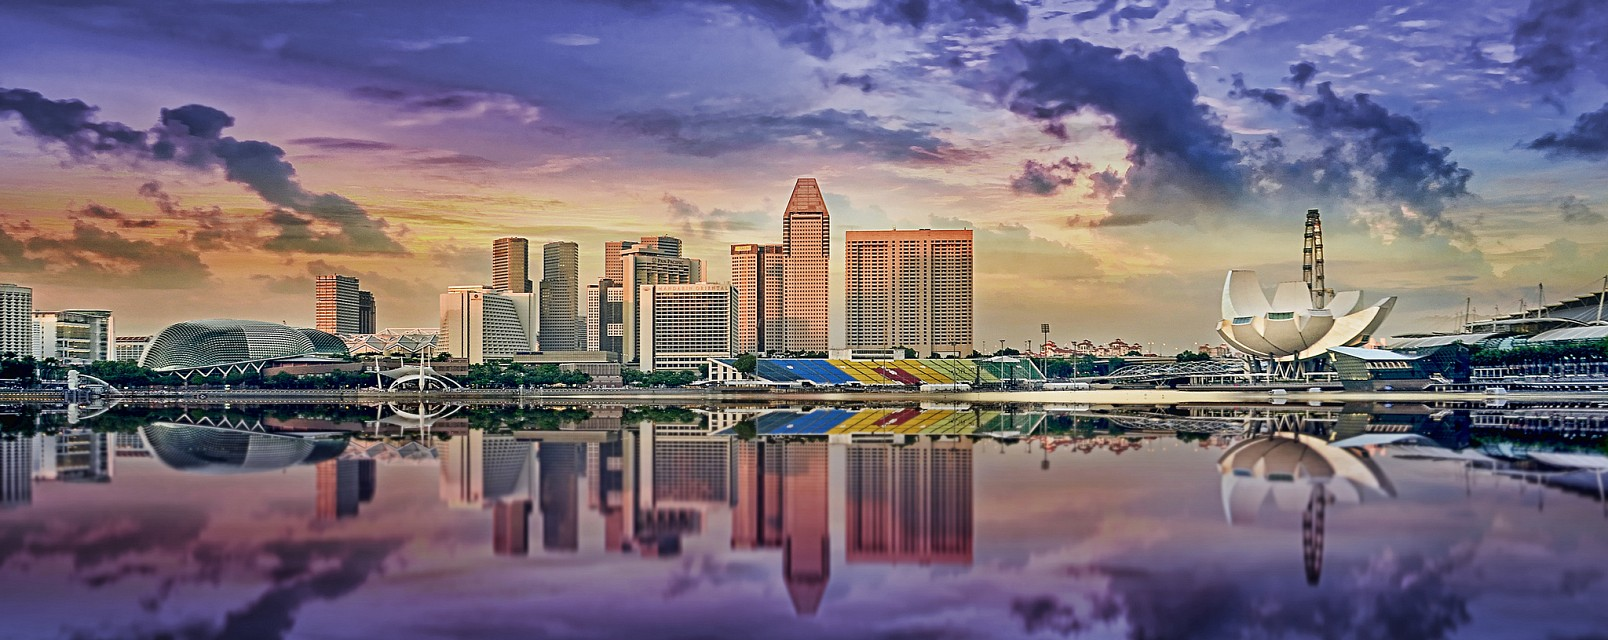 The Surreal Singapore... - Singapore